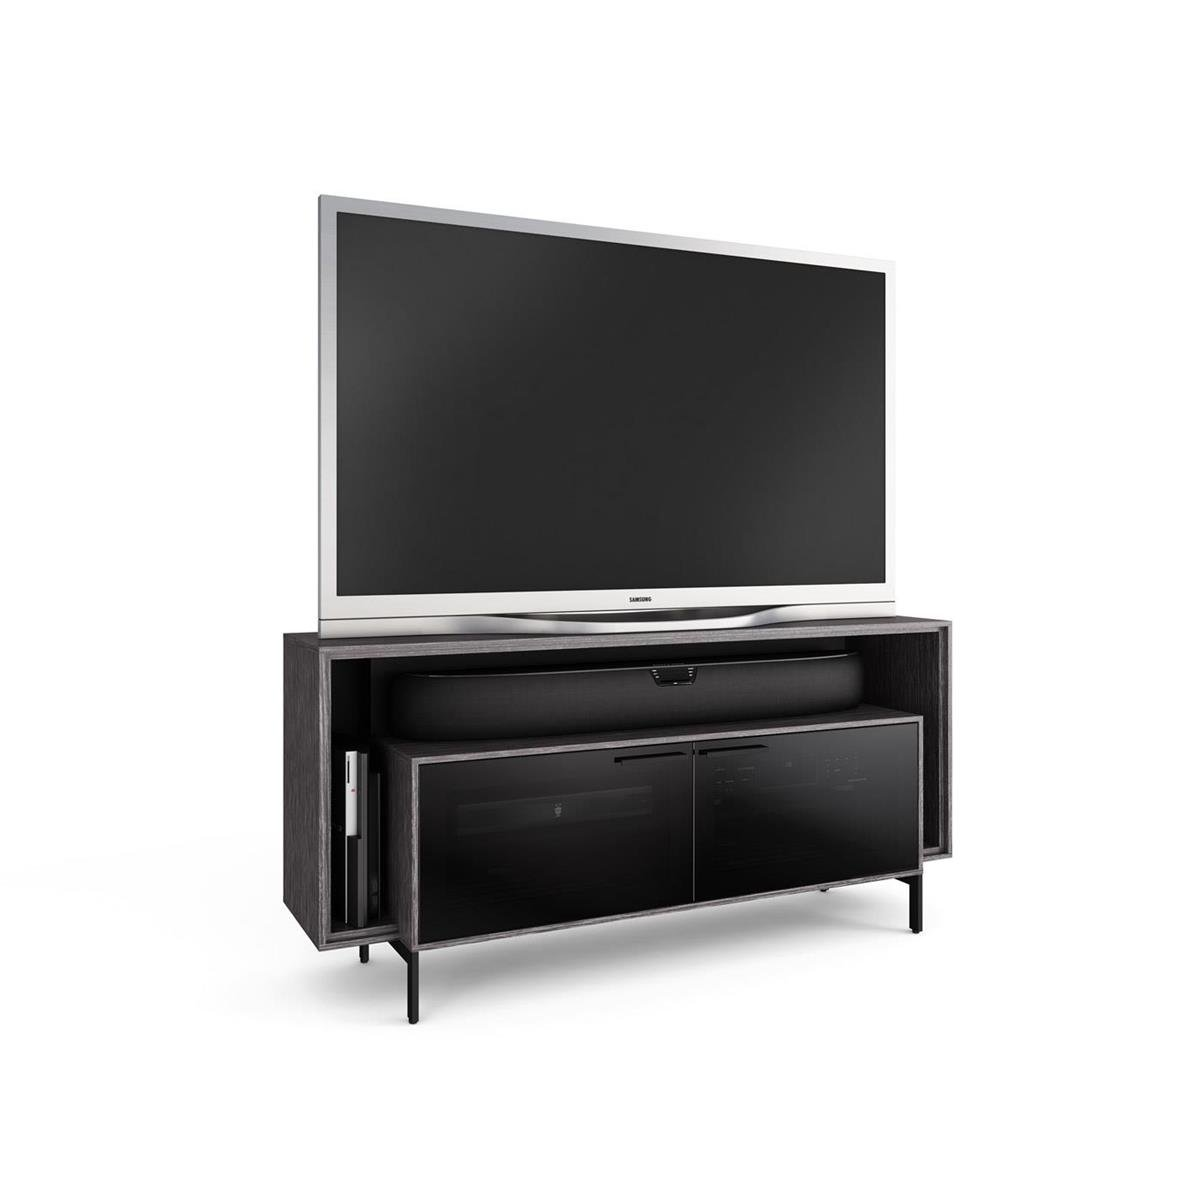 Amazon.com: BDI Cavo 8168 Double Wide TV Cabinet (Graphite): Kitchen U0026  Dining